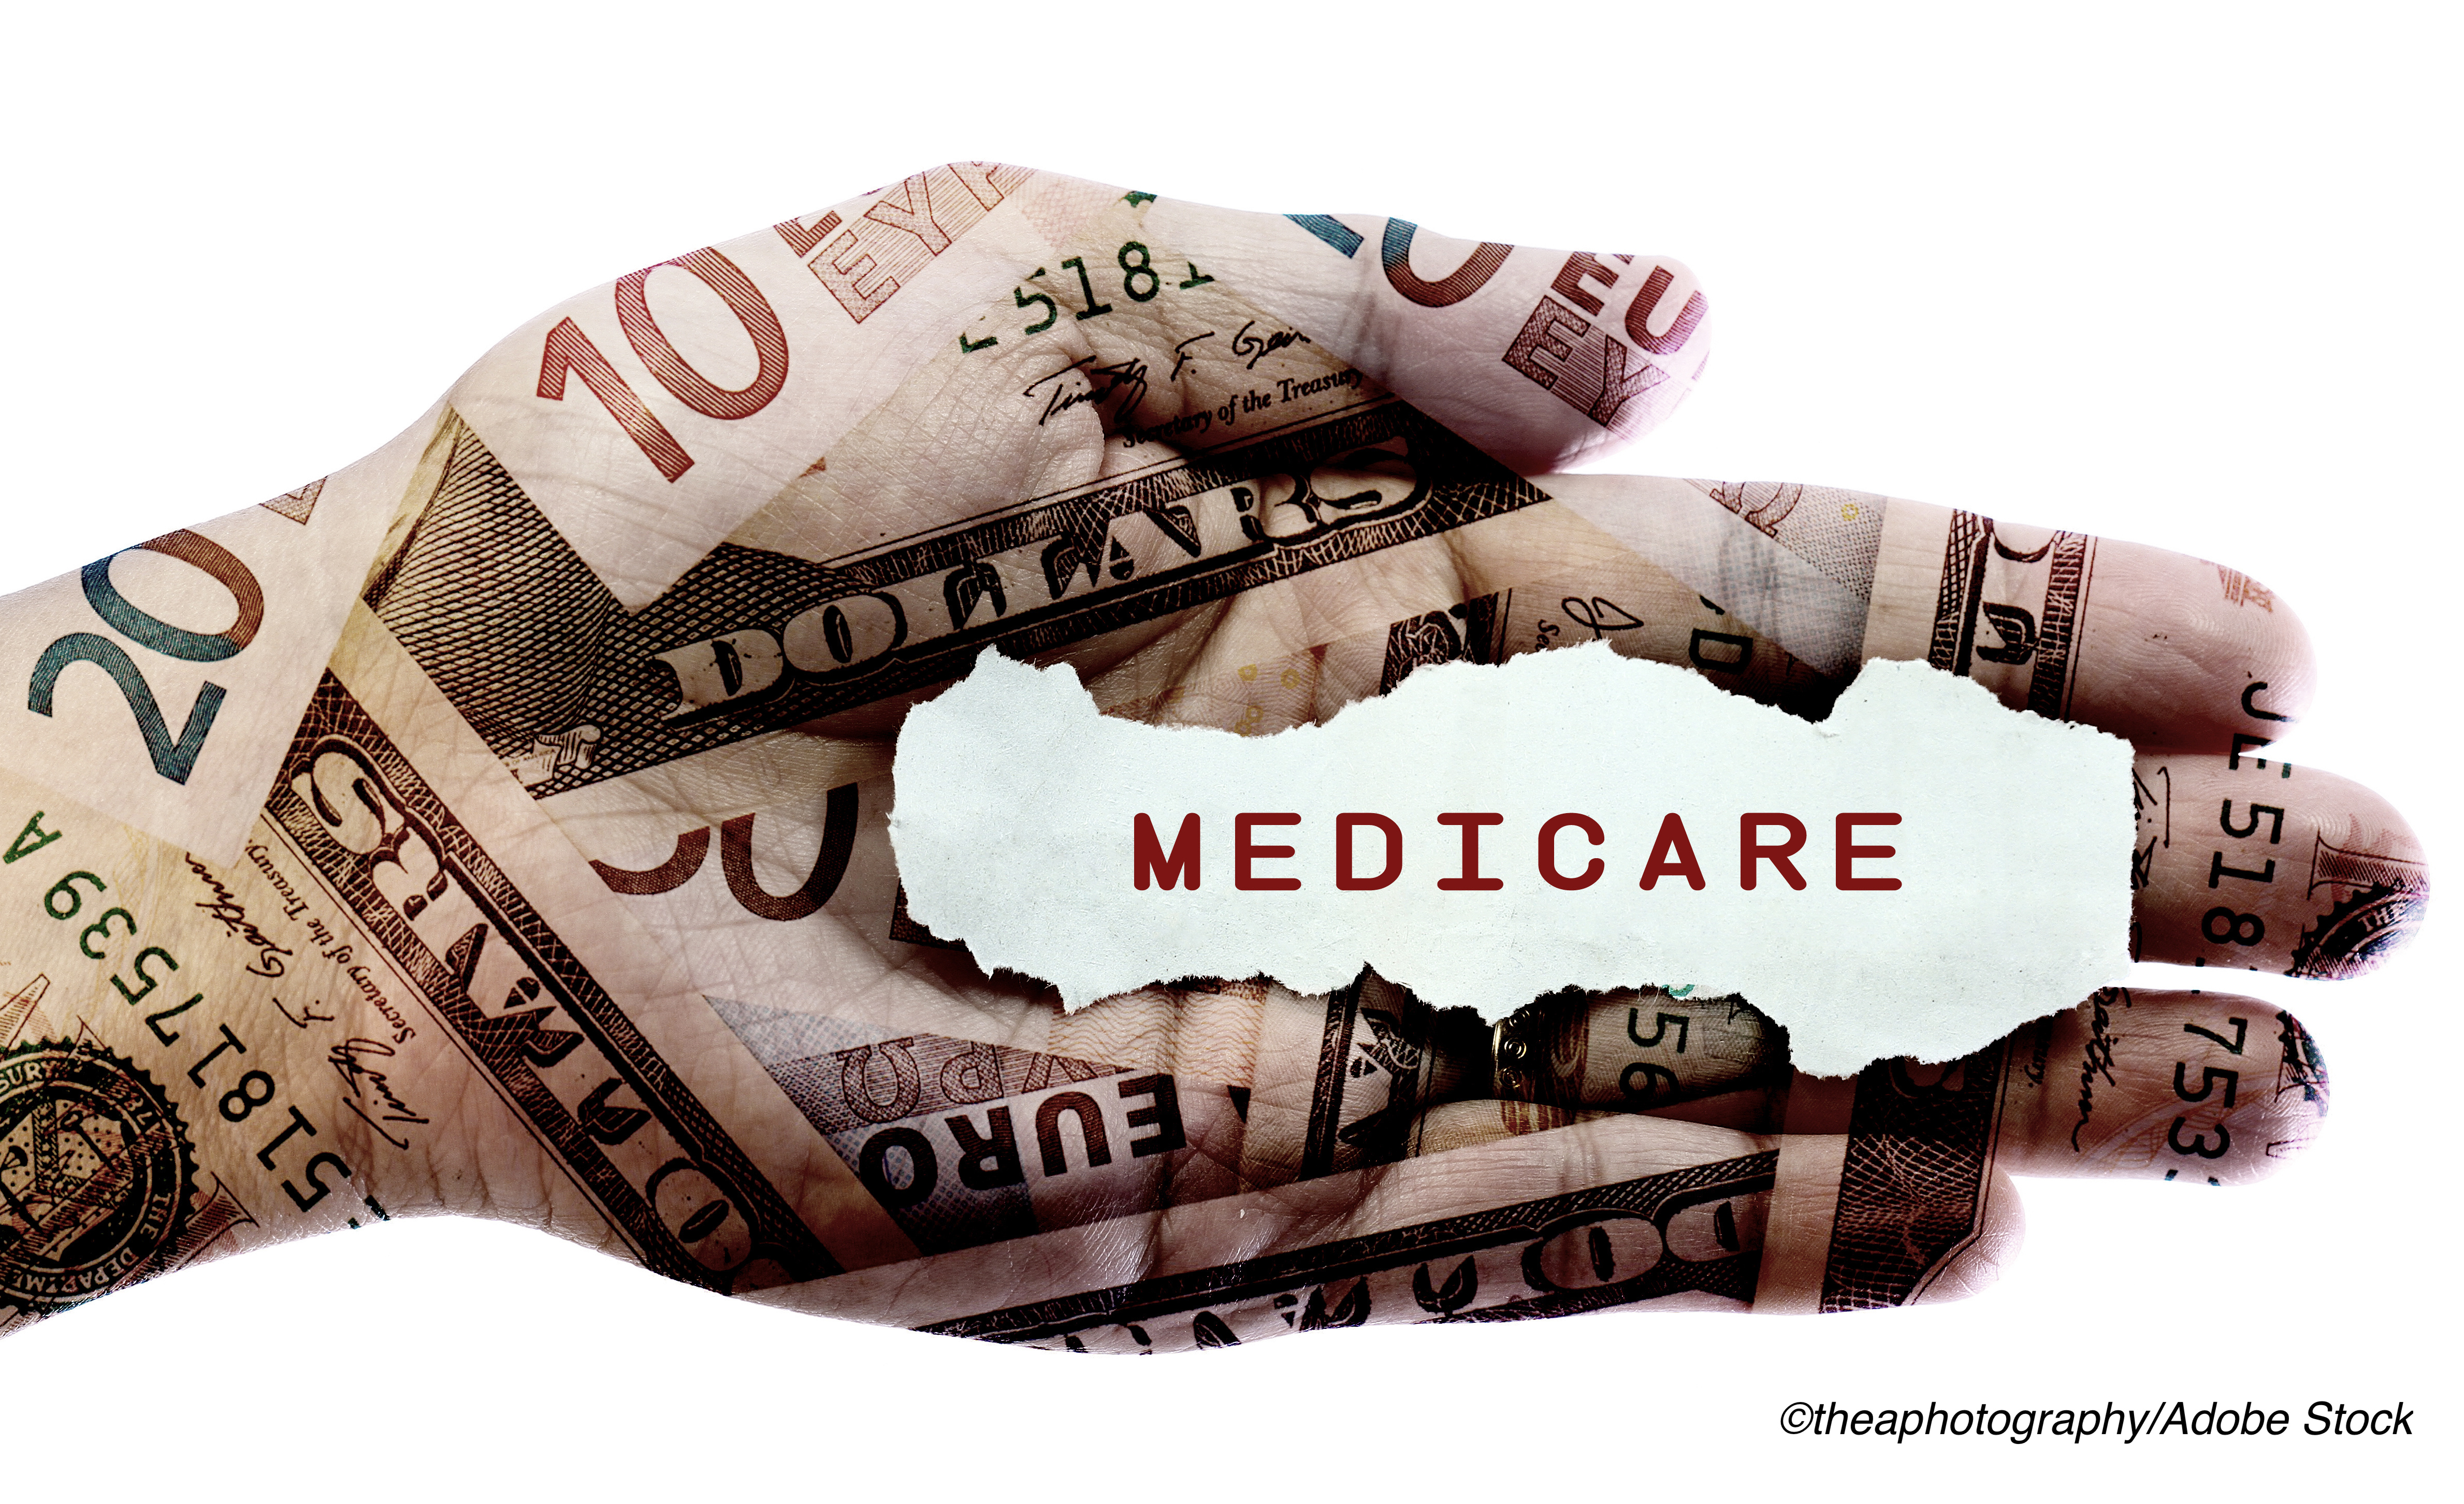 AMA: Medicare Spending Plummeted in Early Days of Covid-19 Pandemic